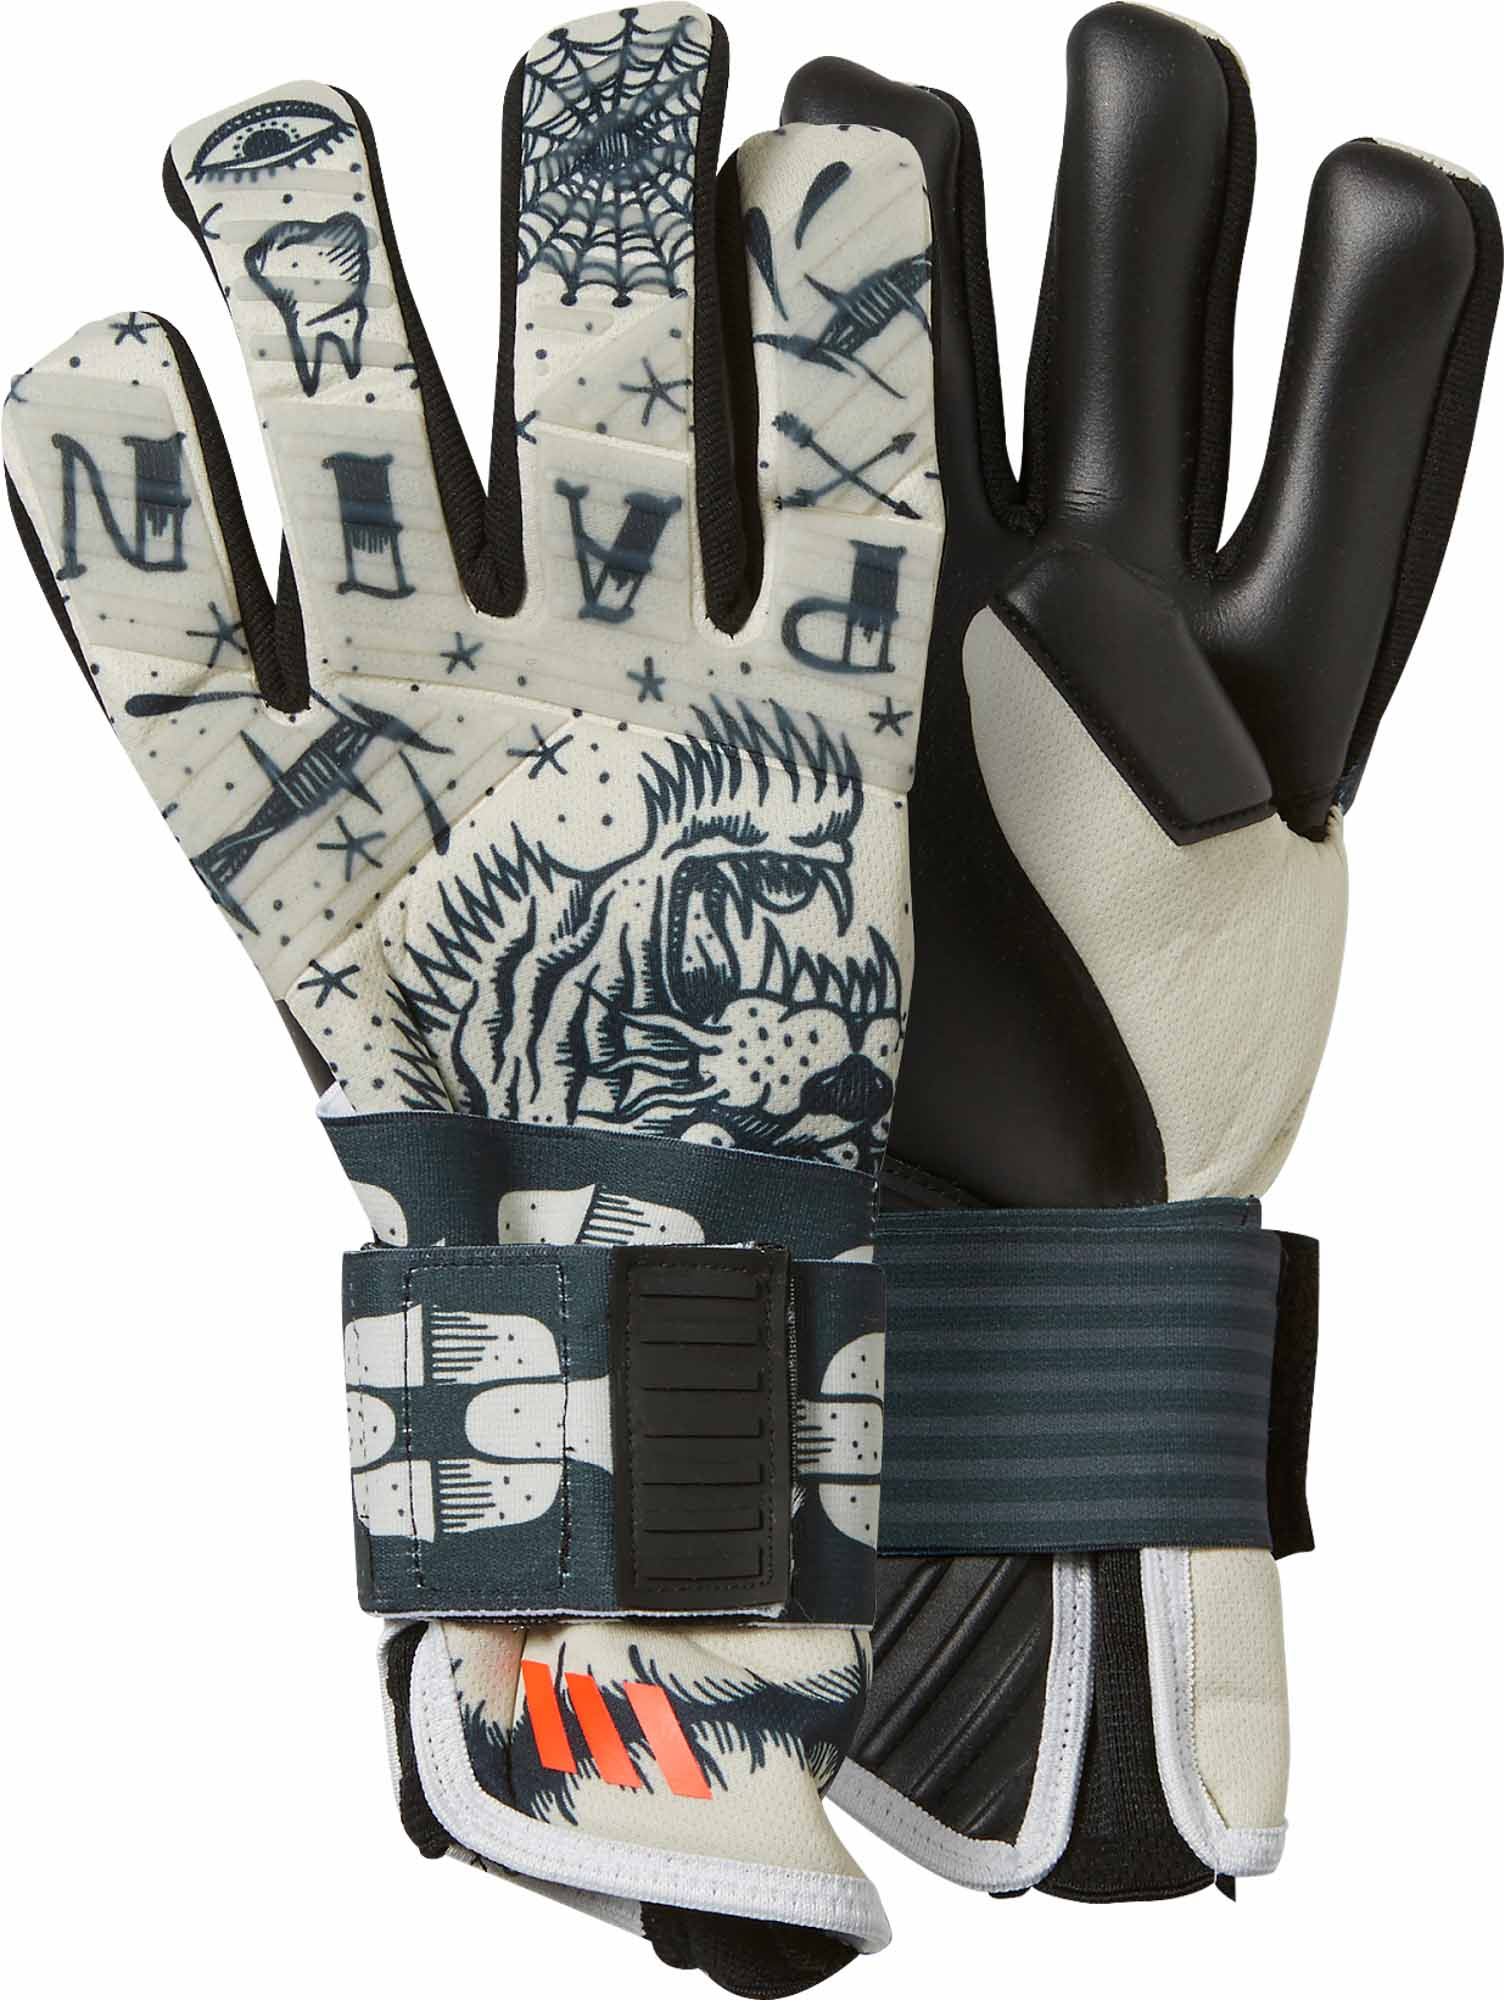 check out e02e1 f6b37 adidas ACE 2-Face Goalkeeper Gloves - White & Black ...